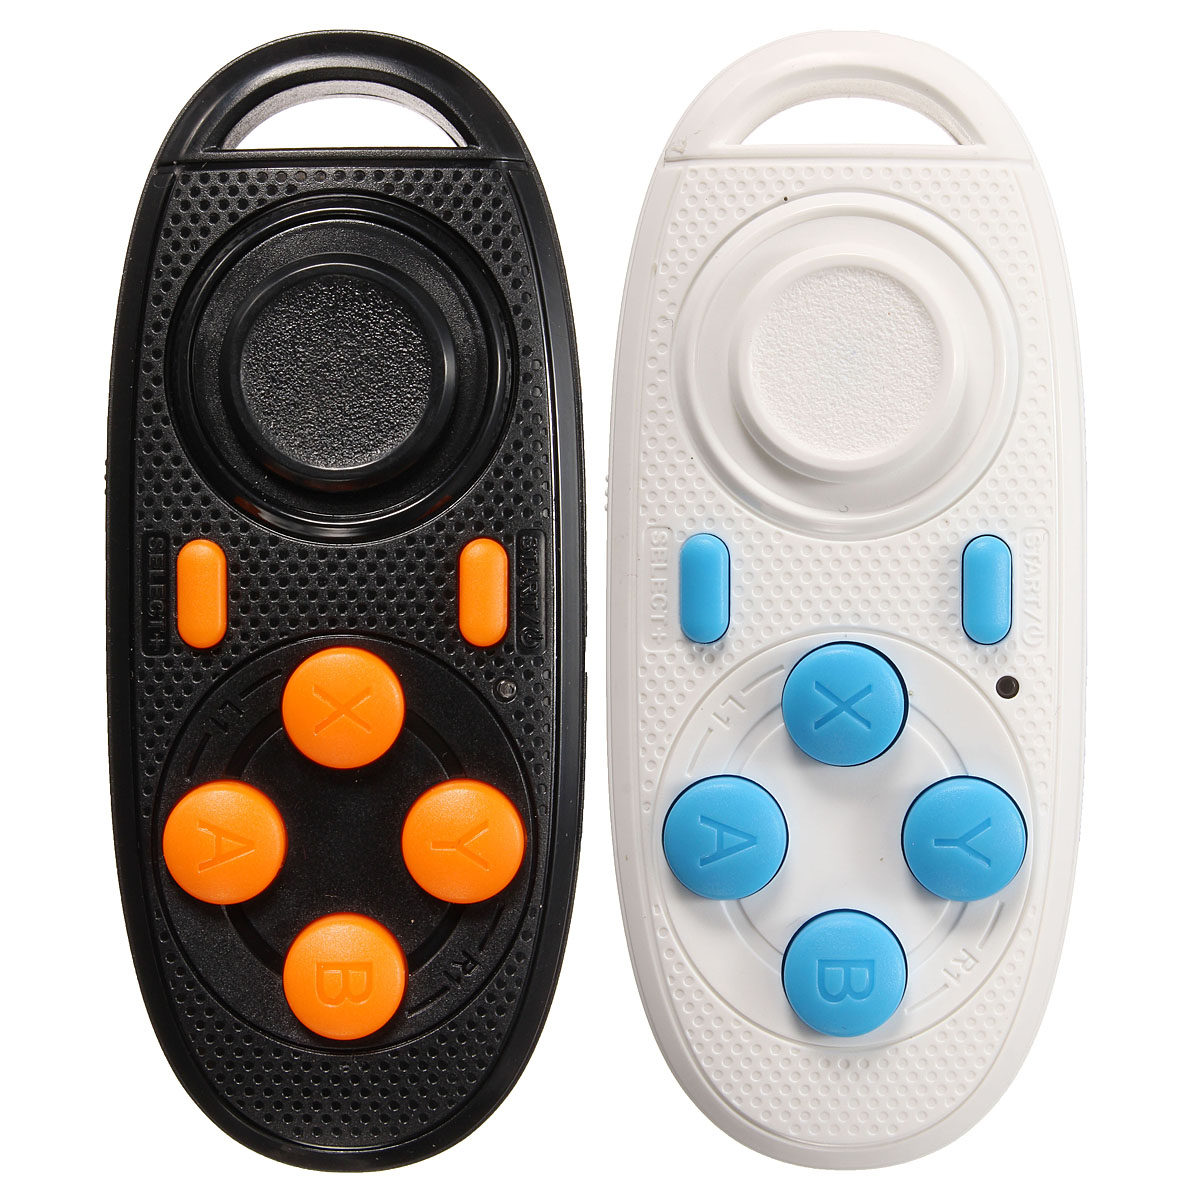 Version 2.0 Wireless Bluetooth Remote Controller Virtual Reality Gamep